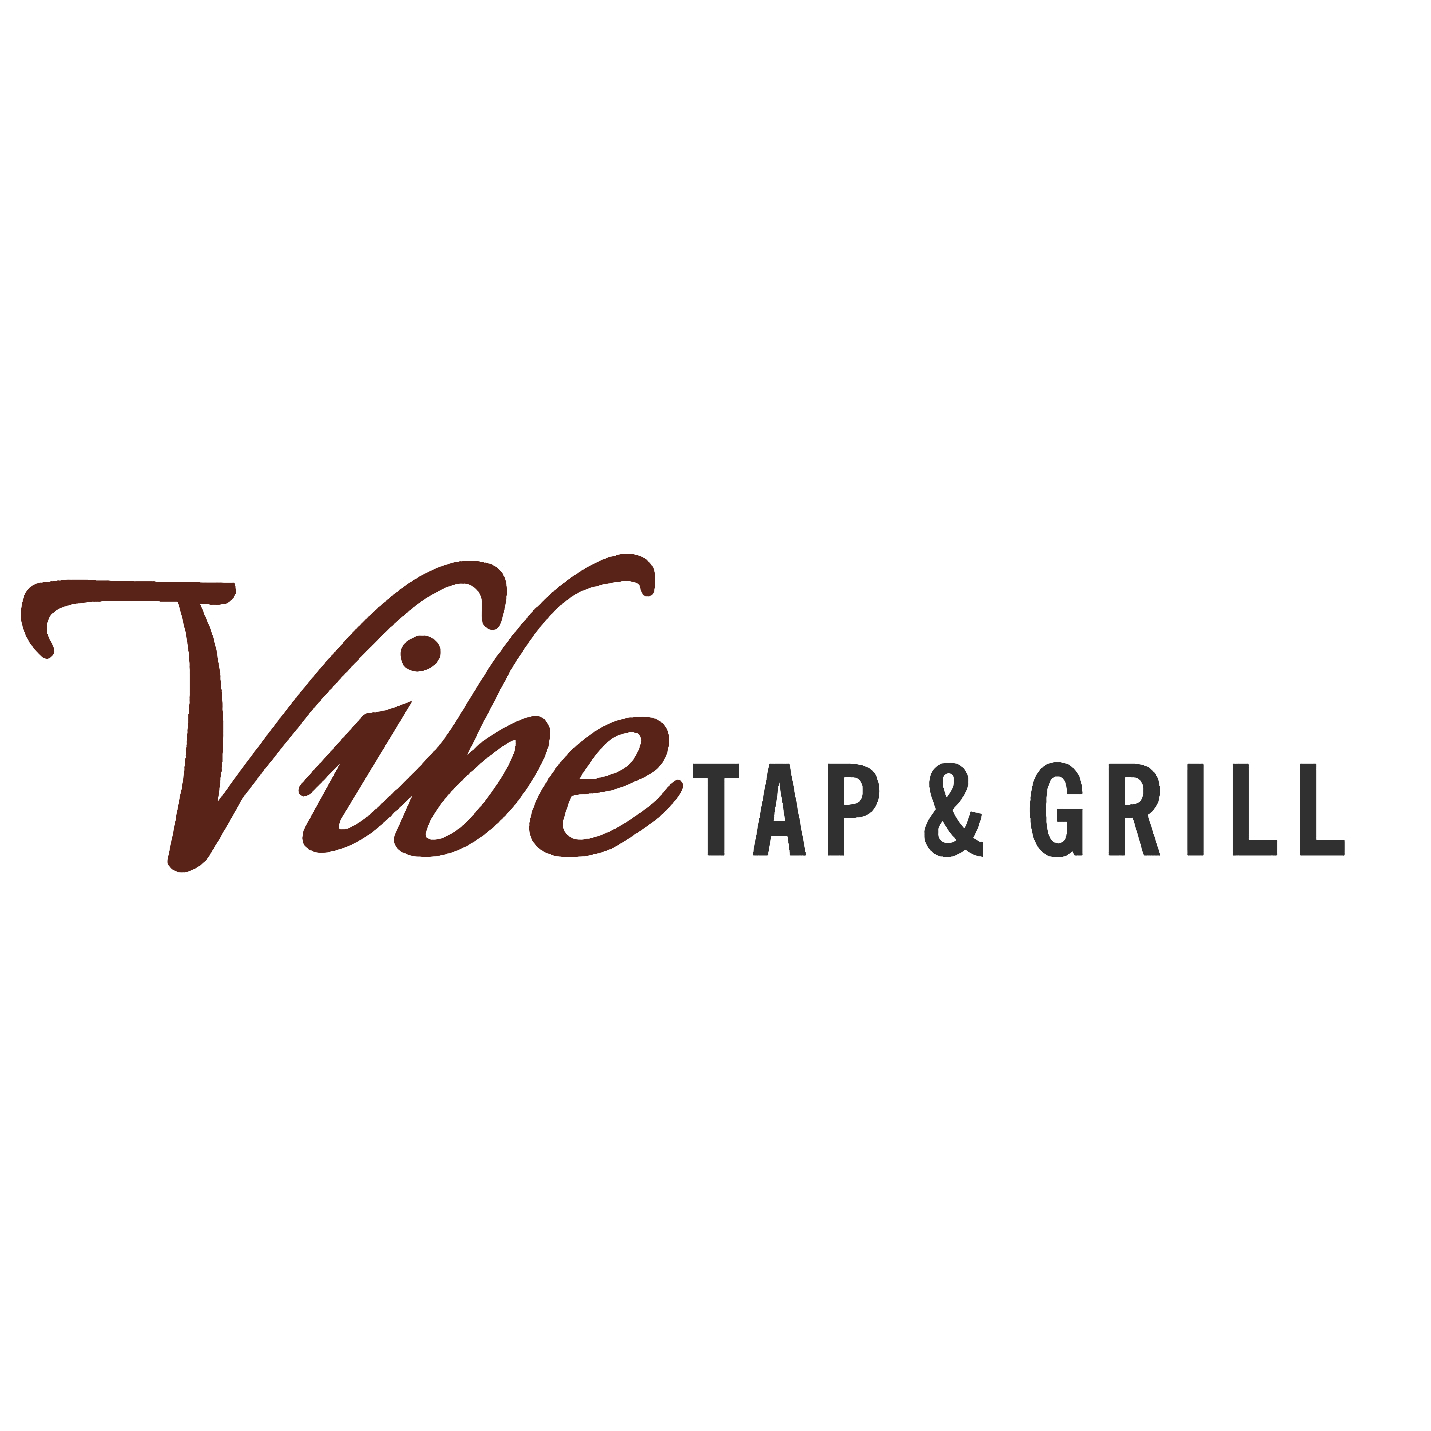 Vibe Tap & Grill